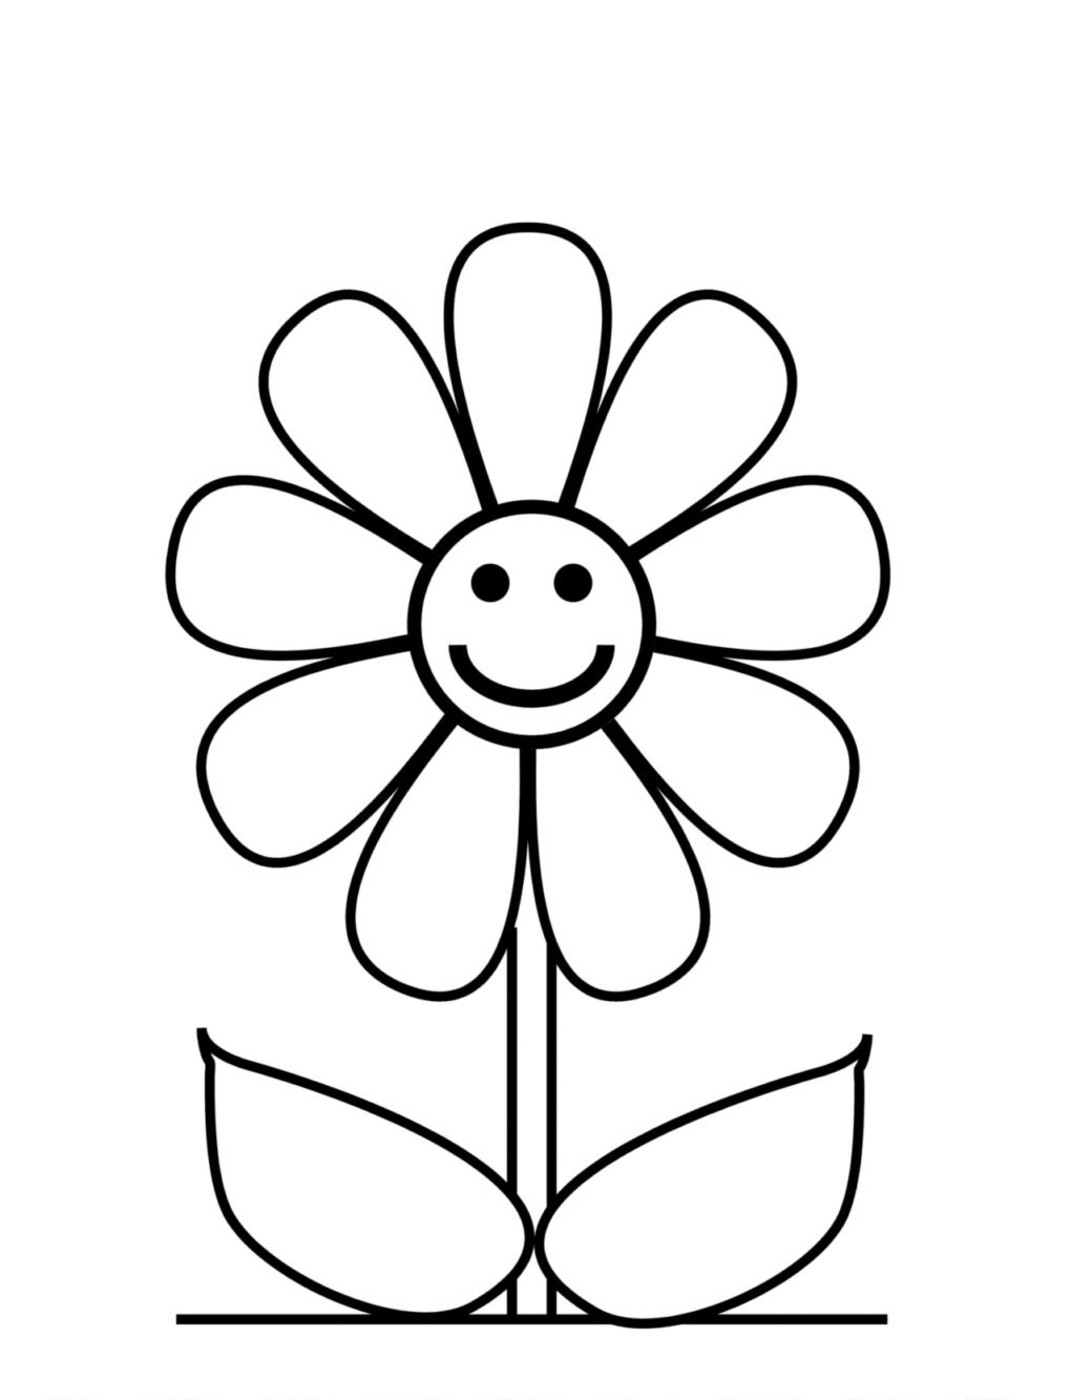 colouring pages of flowers : Flower Coloring Pages For Kids